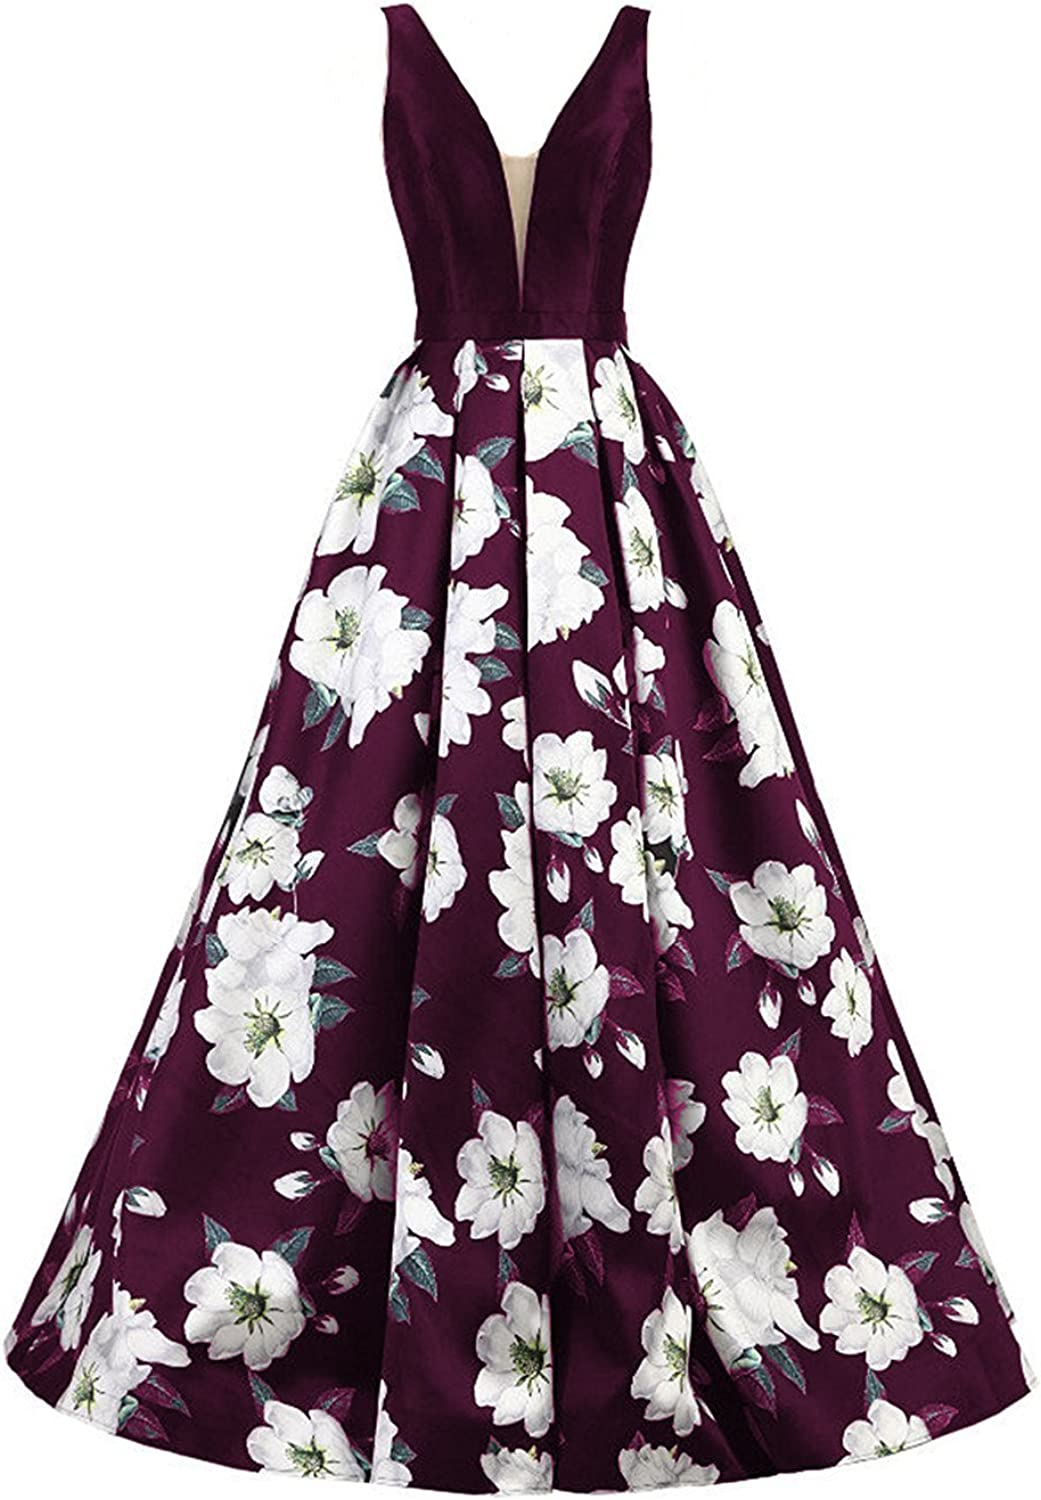 YSMei Womens Long V Neck Floral Printed Evening Prom Dress with Pockets Party Gown 43